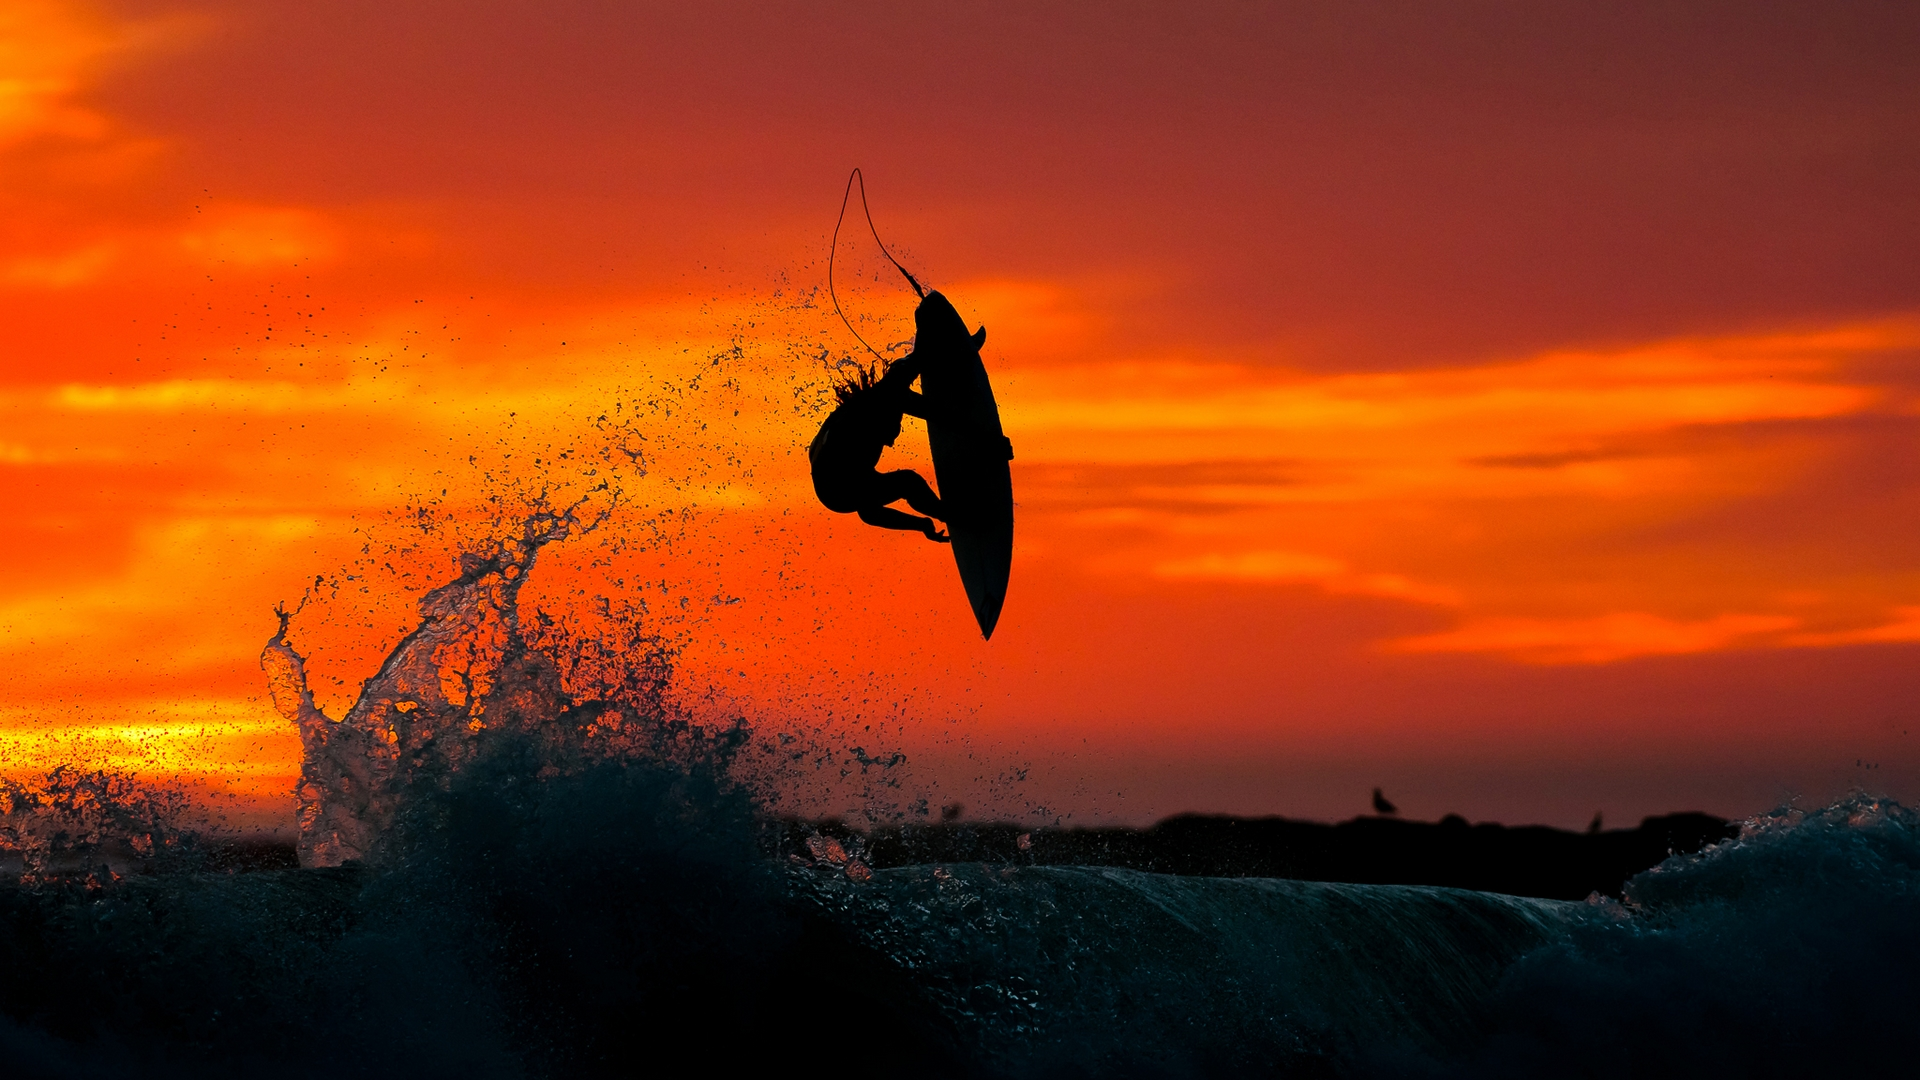 Surfing Wallpapers   Wallpaper High Definition High 1920x1080